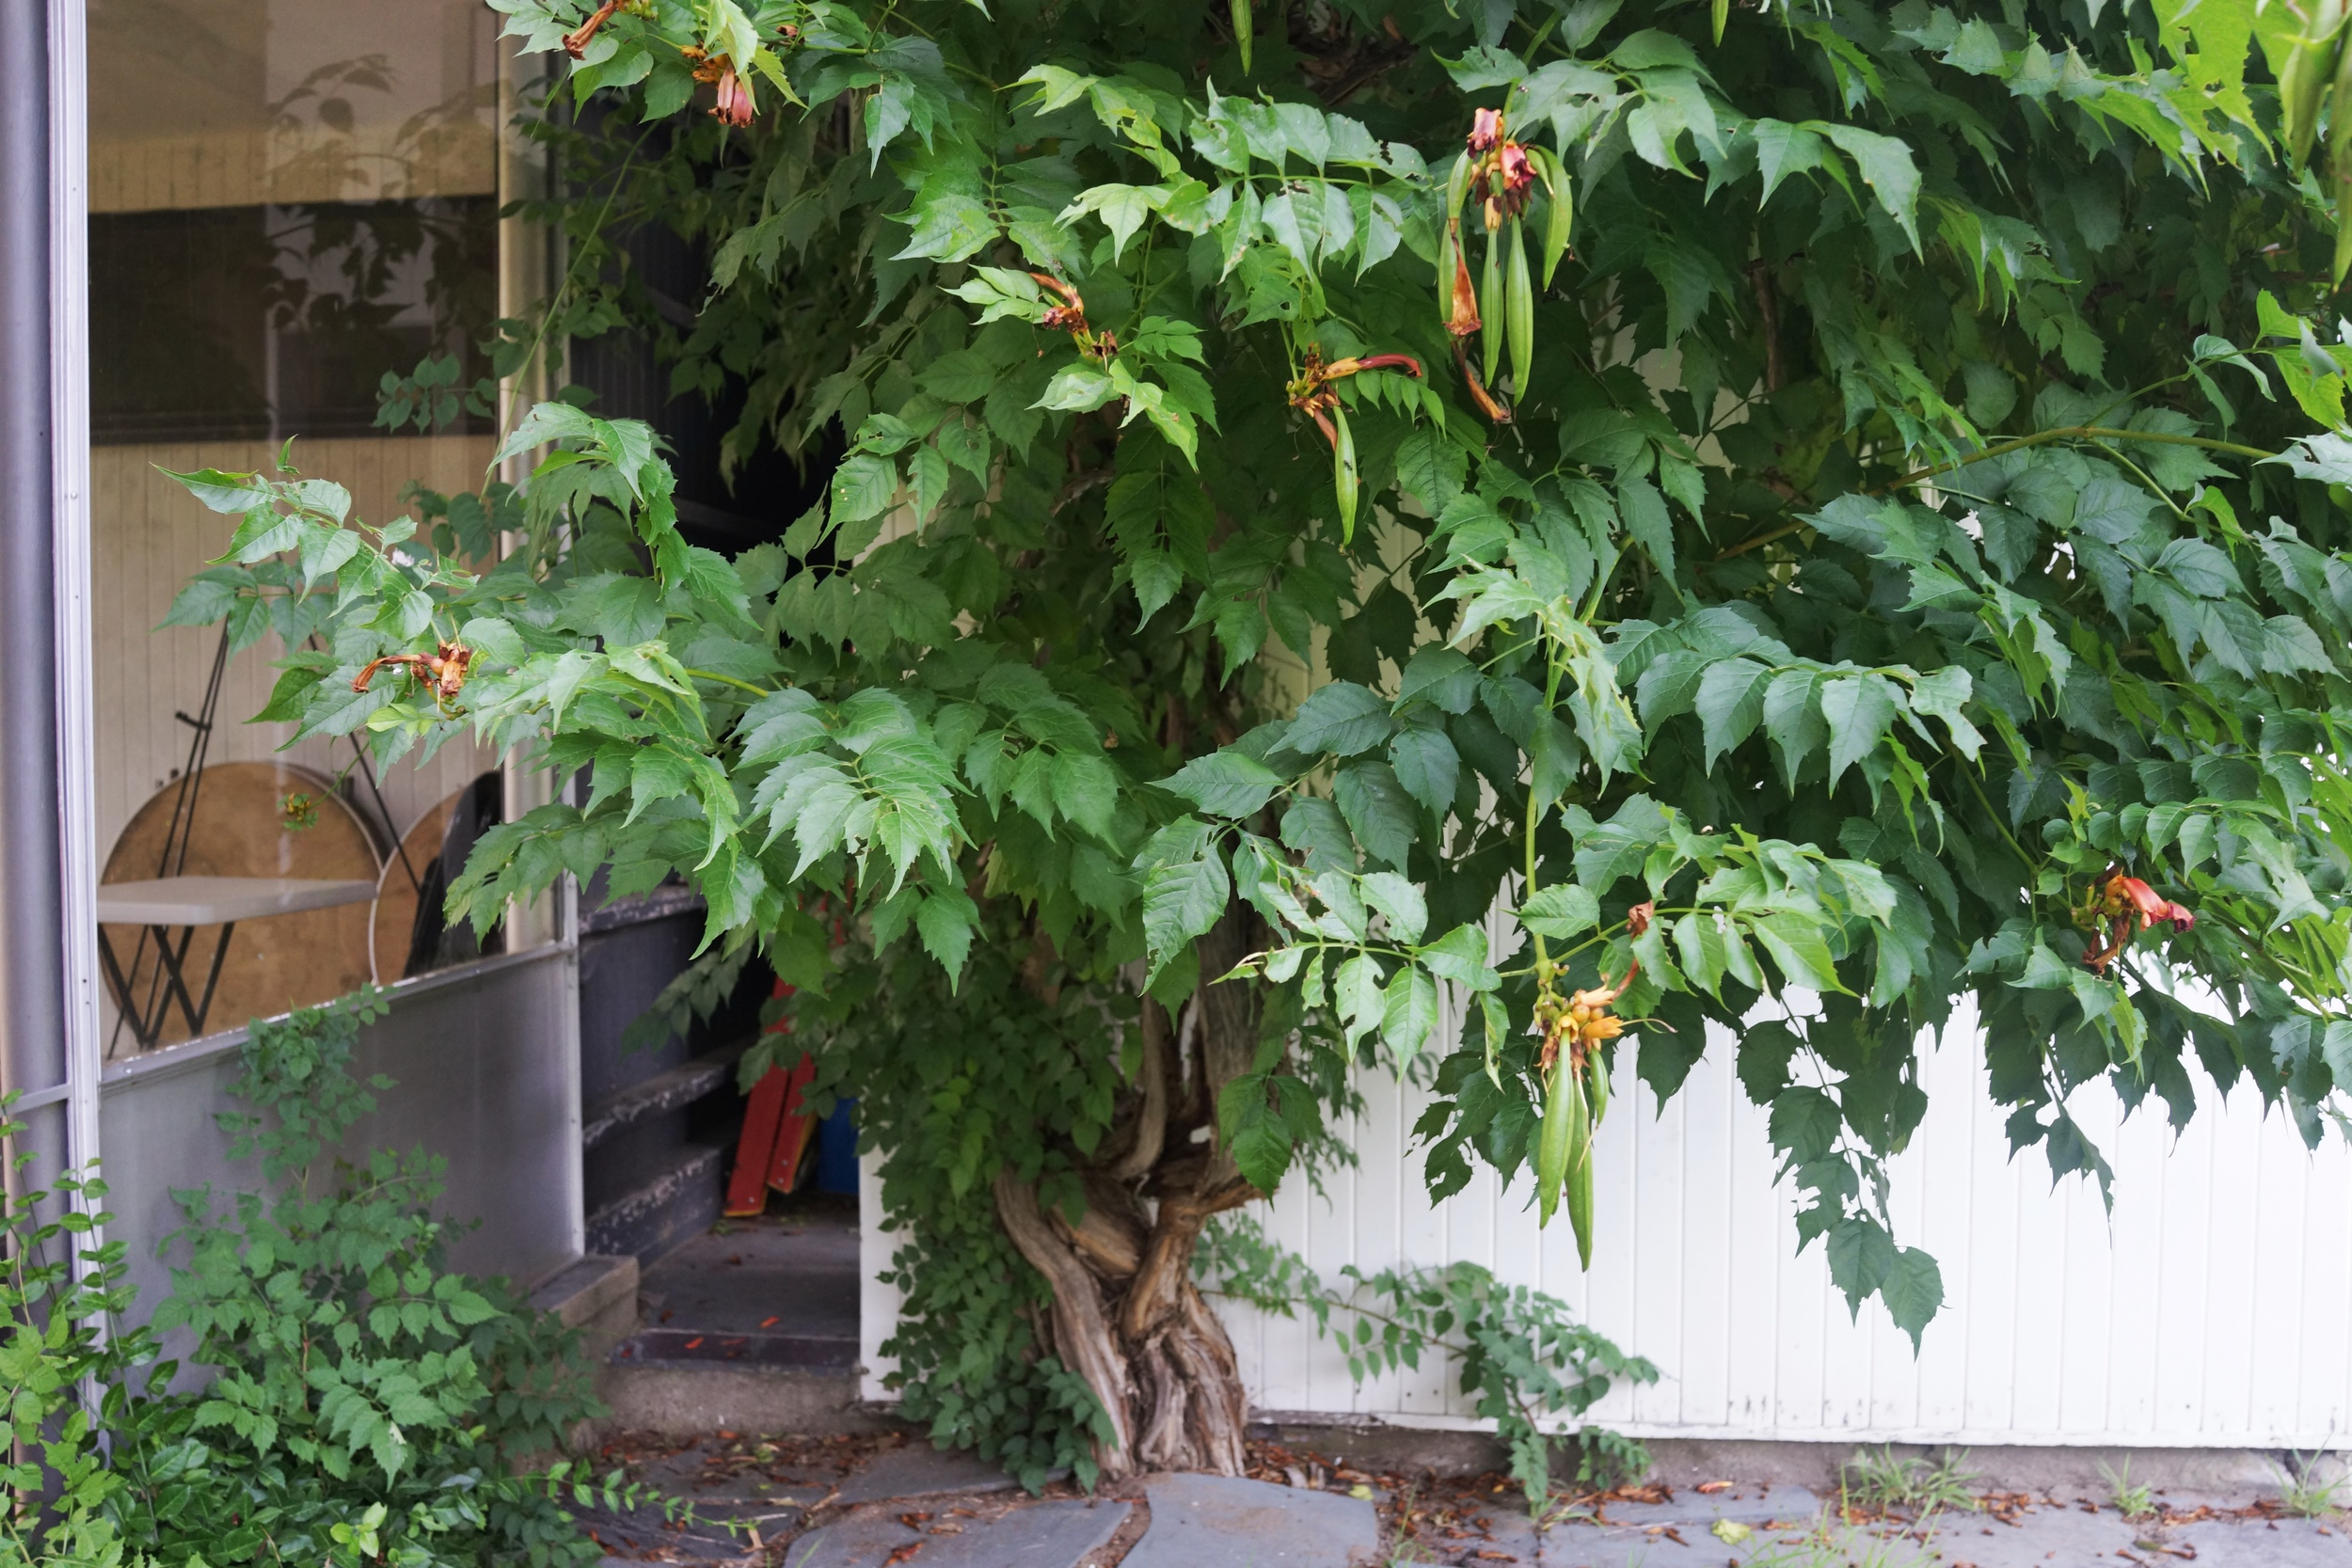 It is always nice to see how plants adapts around an older home.